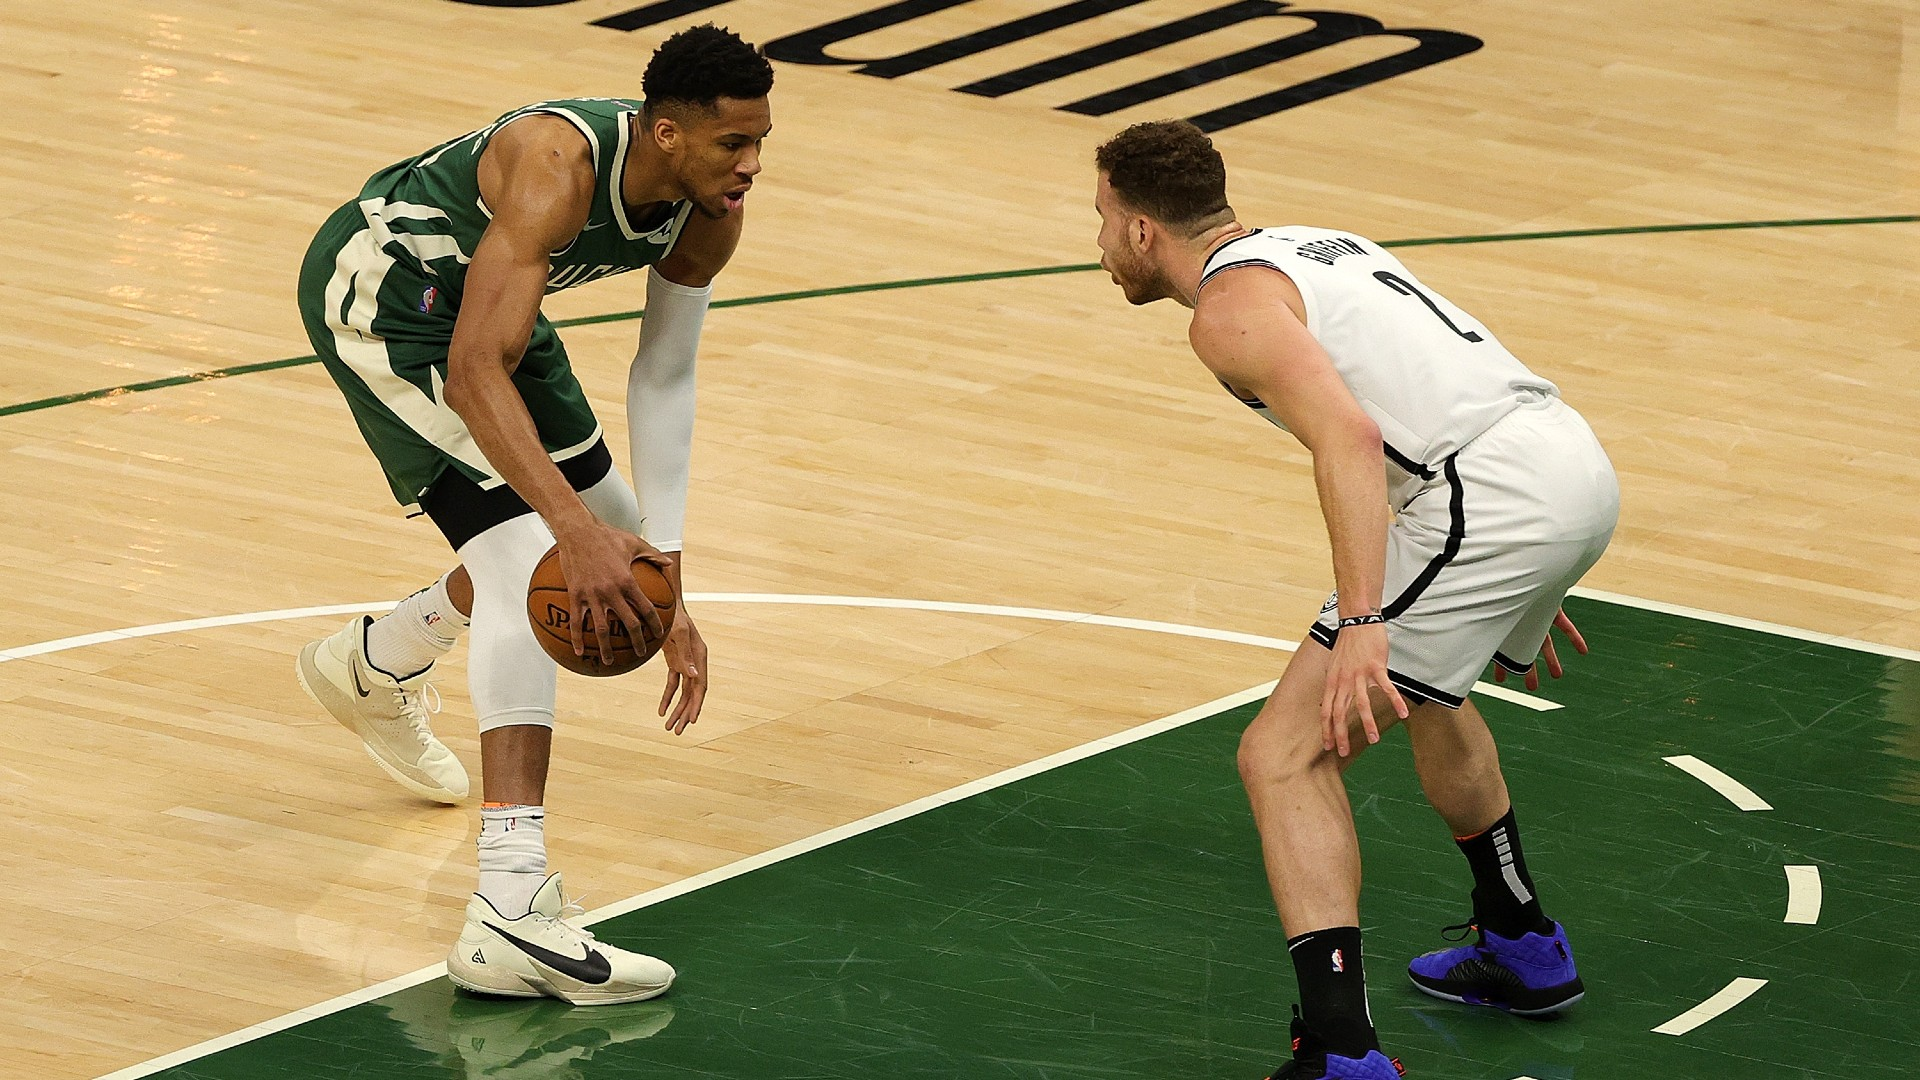 Giannis Antetokounmpo, the Bucks need to improve on the 3rd game to throw the Nets